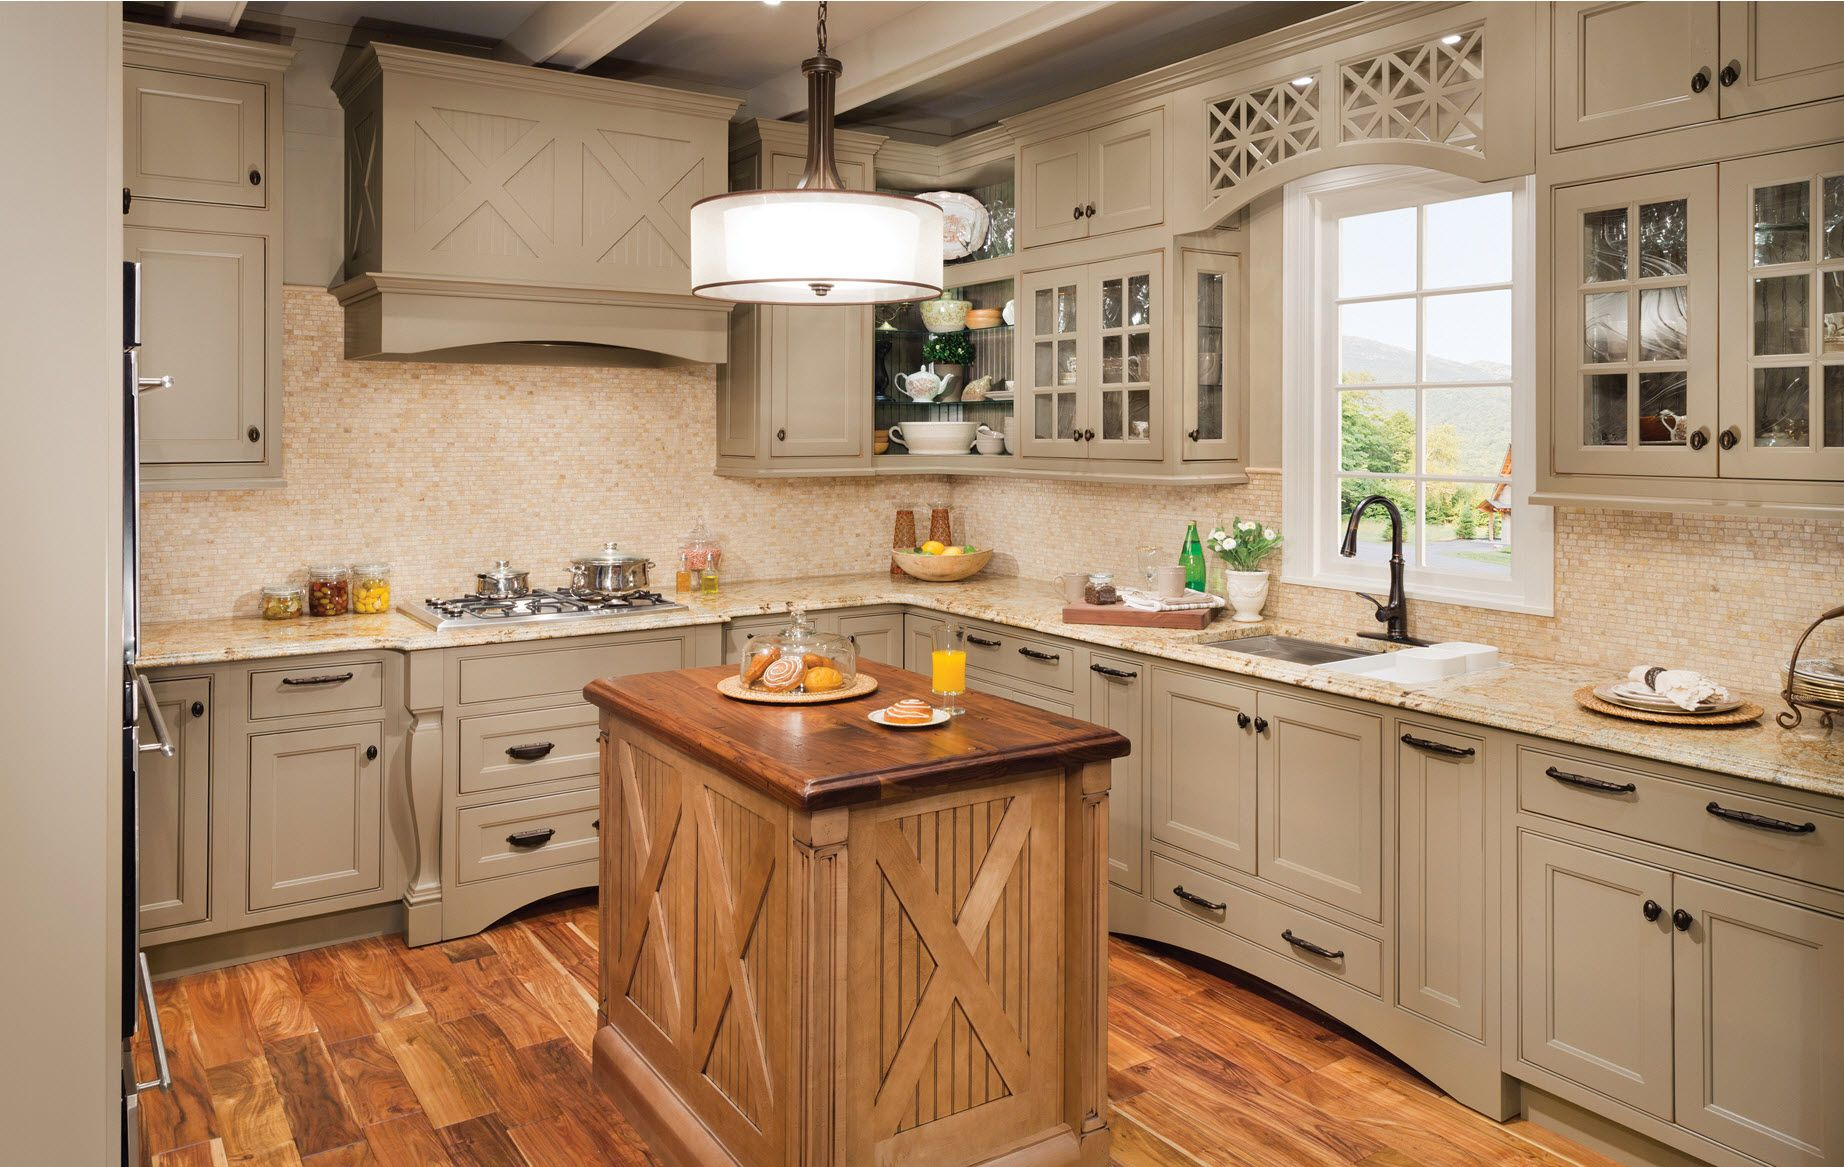 Home Decorations: Best Kitchen Contractors Ideas For Remodeling Kitchen  Renovation Contractor Kitchen Cabinet Ideas Photos From Kitchen Remodels  Designs And ...